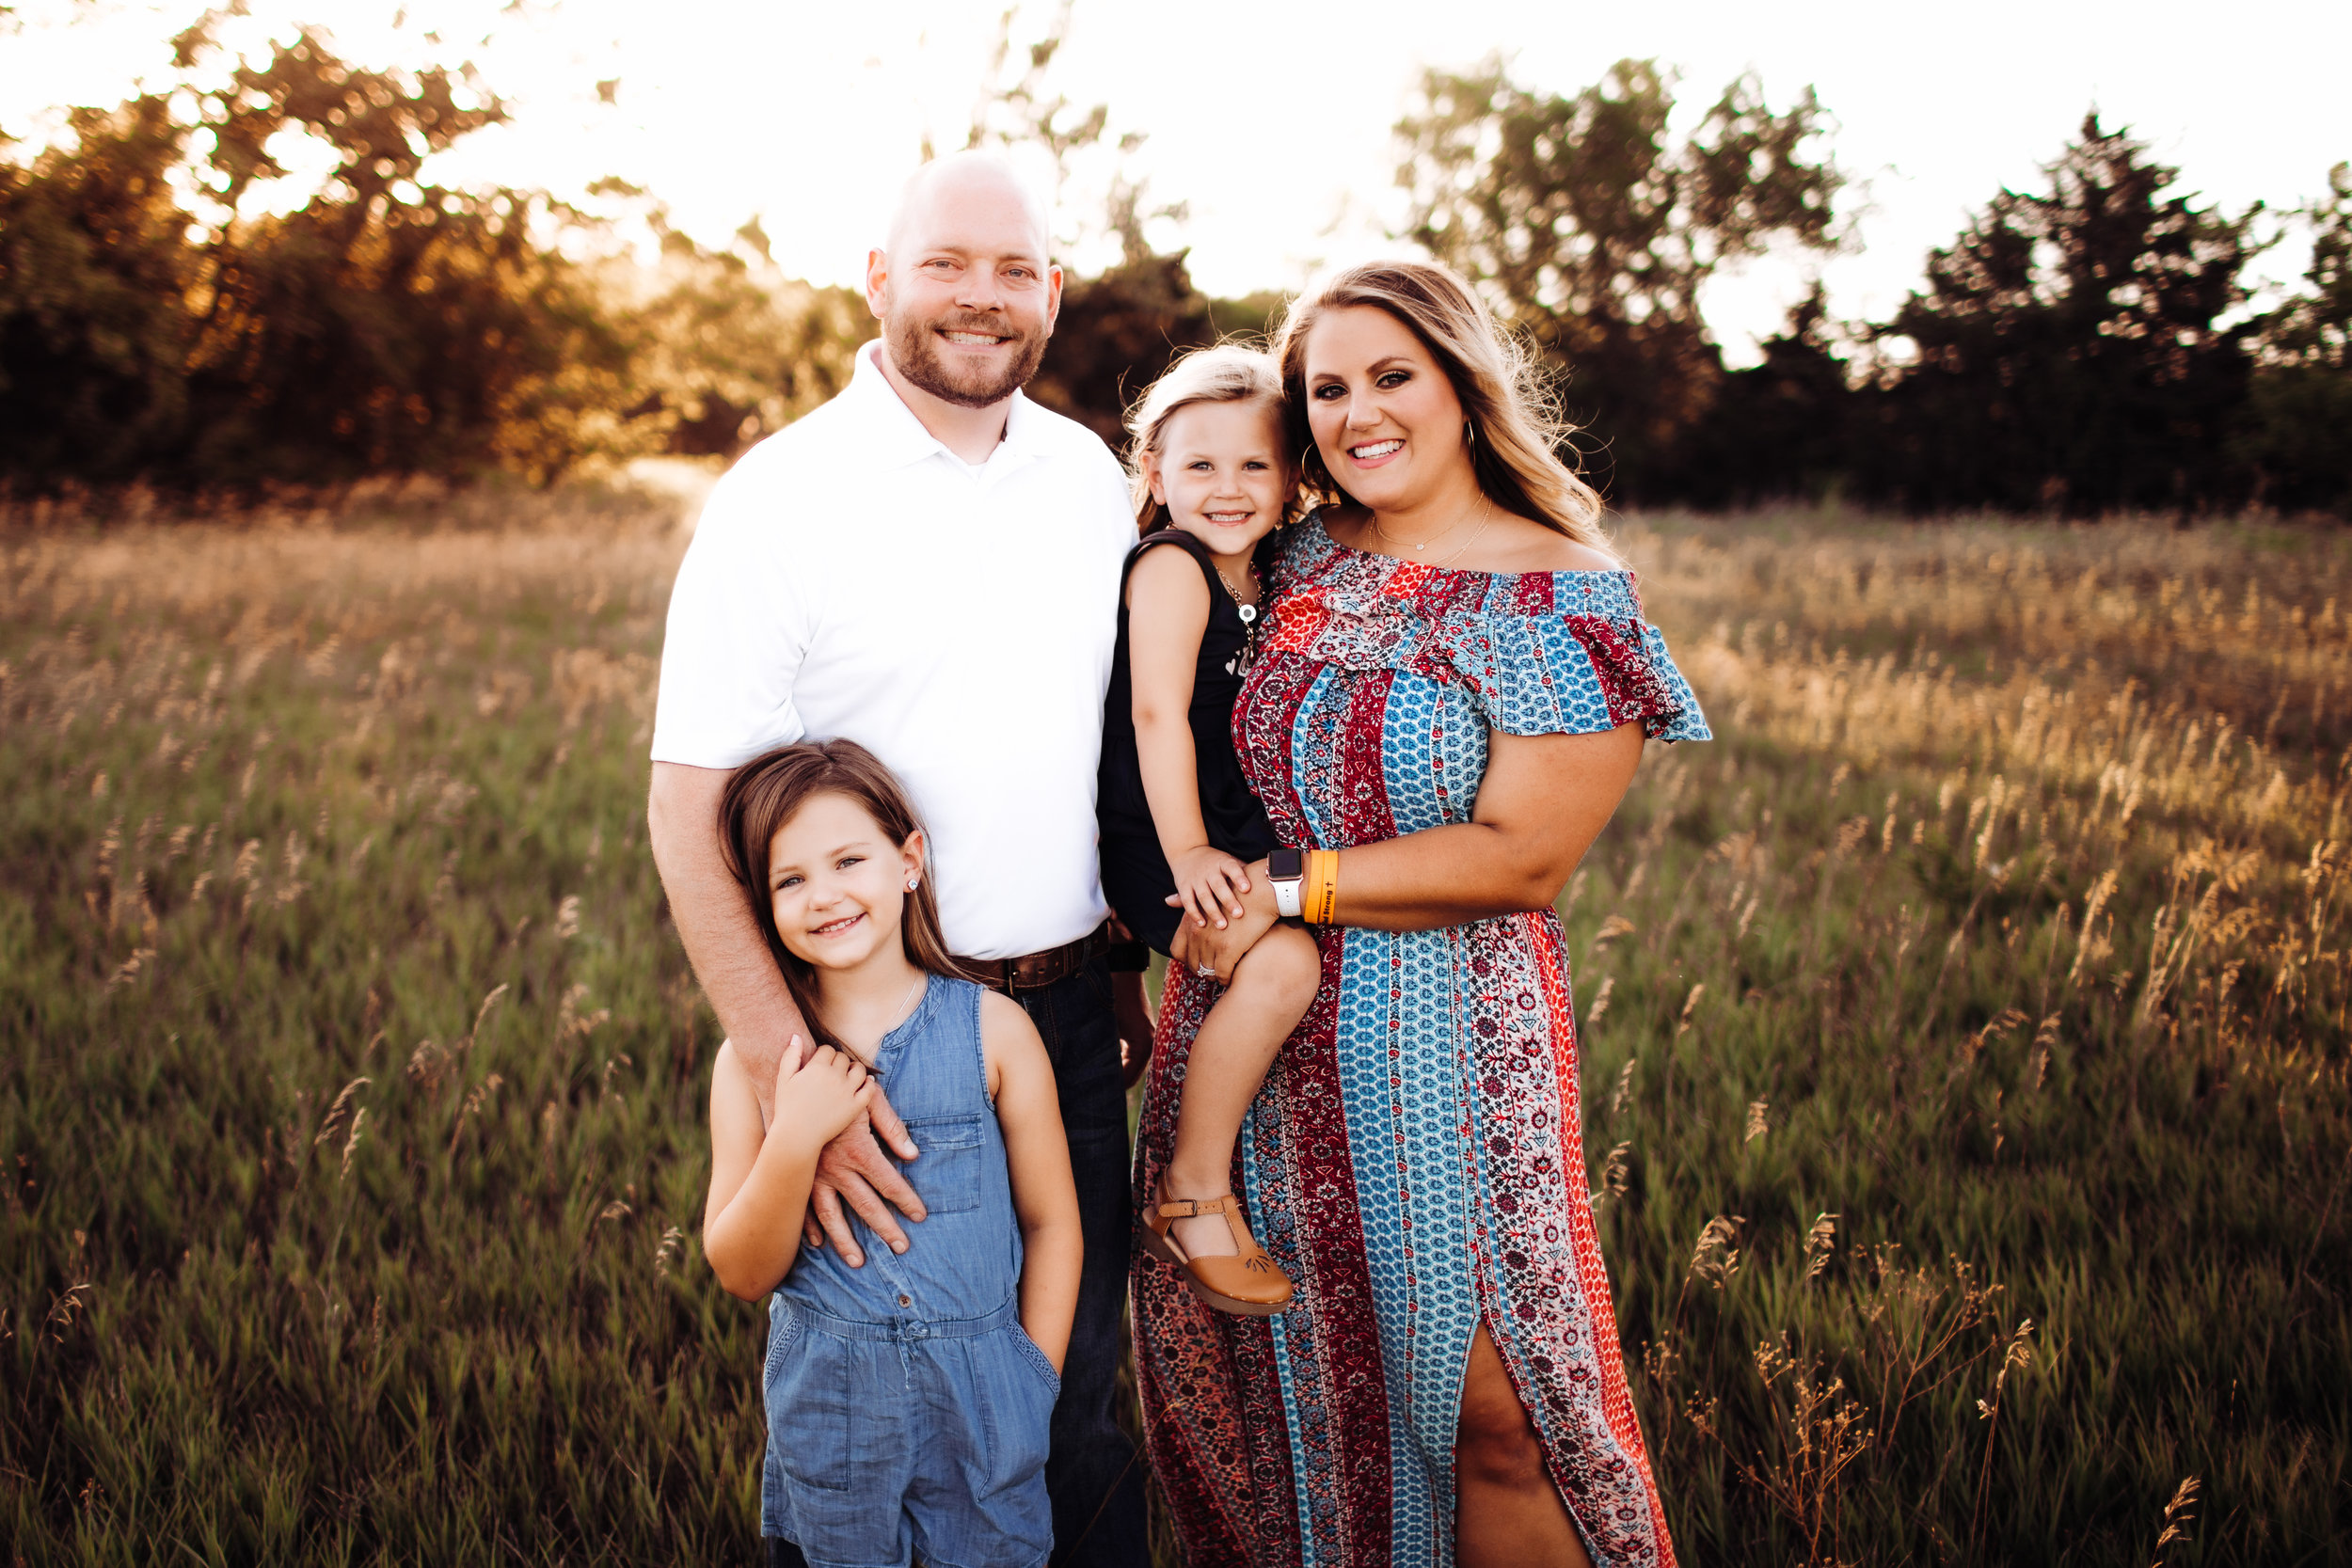 Mini Session -  An alternative to the full family session. These are scheduled back to back and shorter time slots.INVESTMENT: $250 with a $75 deposit fee, which will be applied to the total.30 minute sessionDerby Location of photographers choice (field look)online viewing gallery20 fully edited digital images